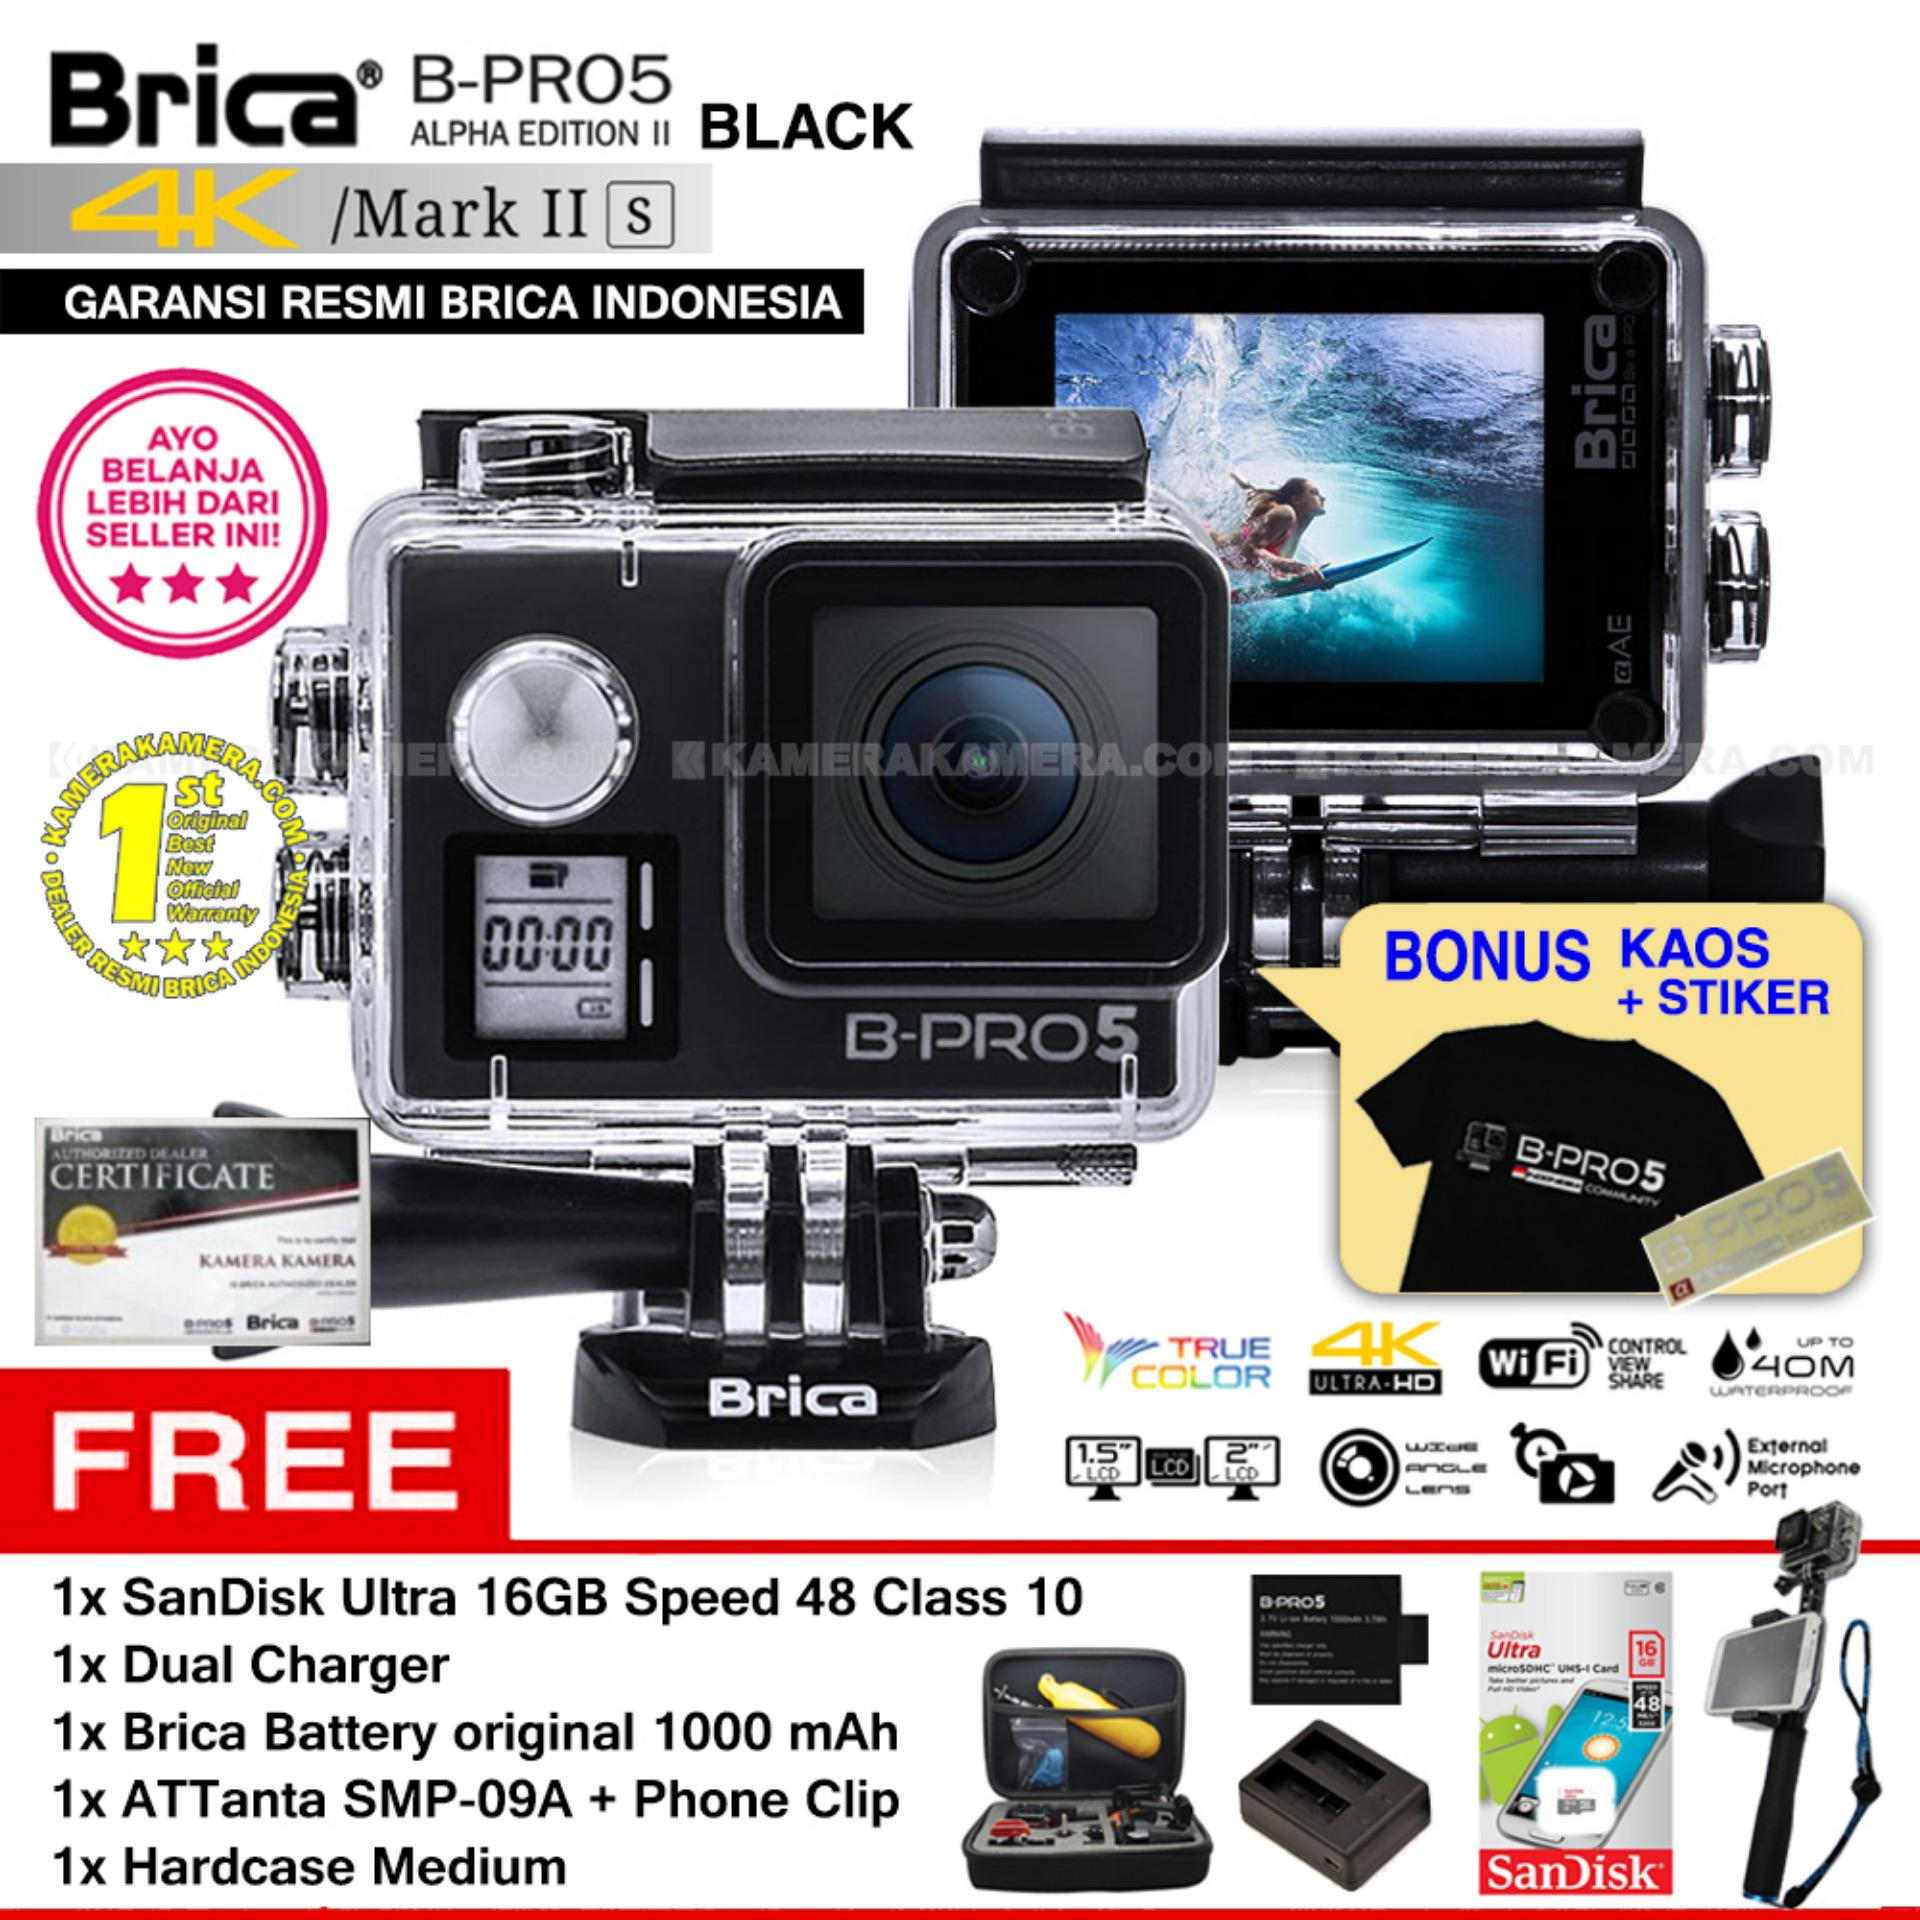 BRICA B-PRO 5 Alpha Edition Mark IIs (AE2s) WIFI 4K BLACK + ATTanta SMP-09A + Phone Clip + Battery Brica 1000mAh + Dual Charger + SanDisk 16GB Class 10 + Hardcase Medium + Kaos Brica + Sticker BPRO5